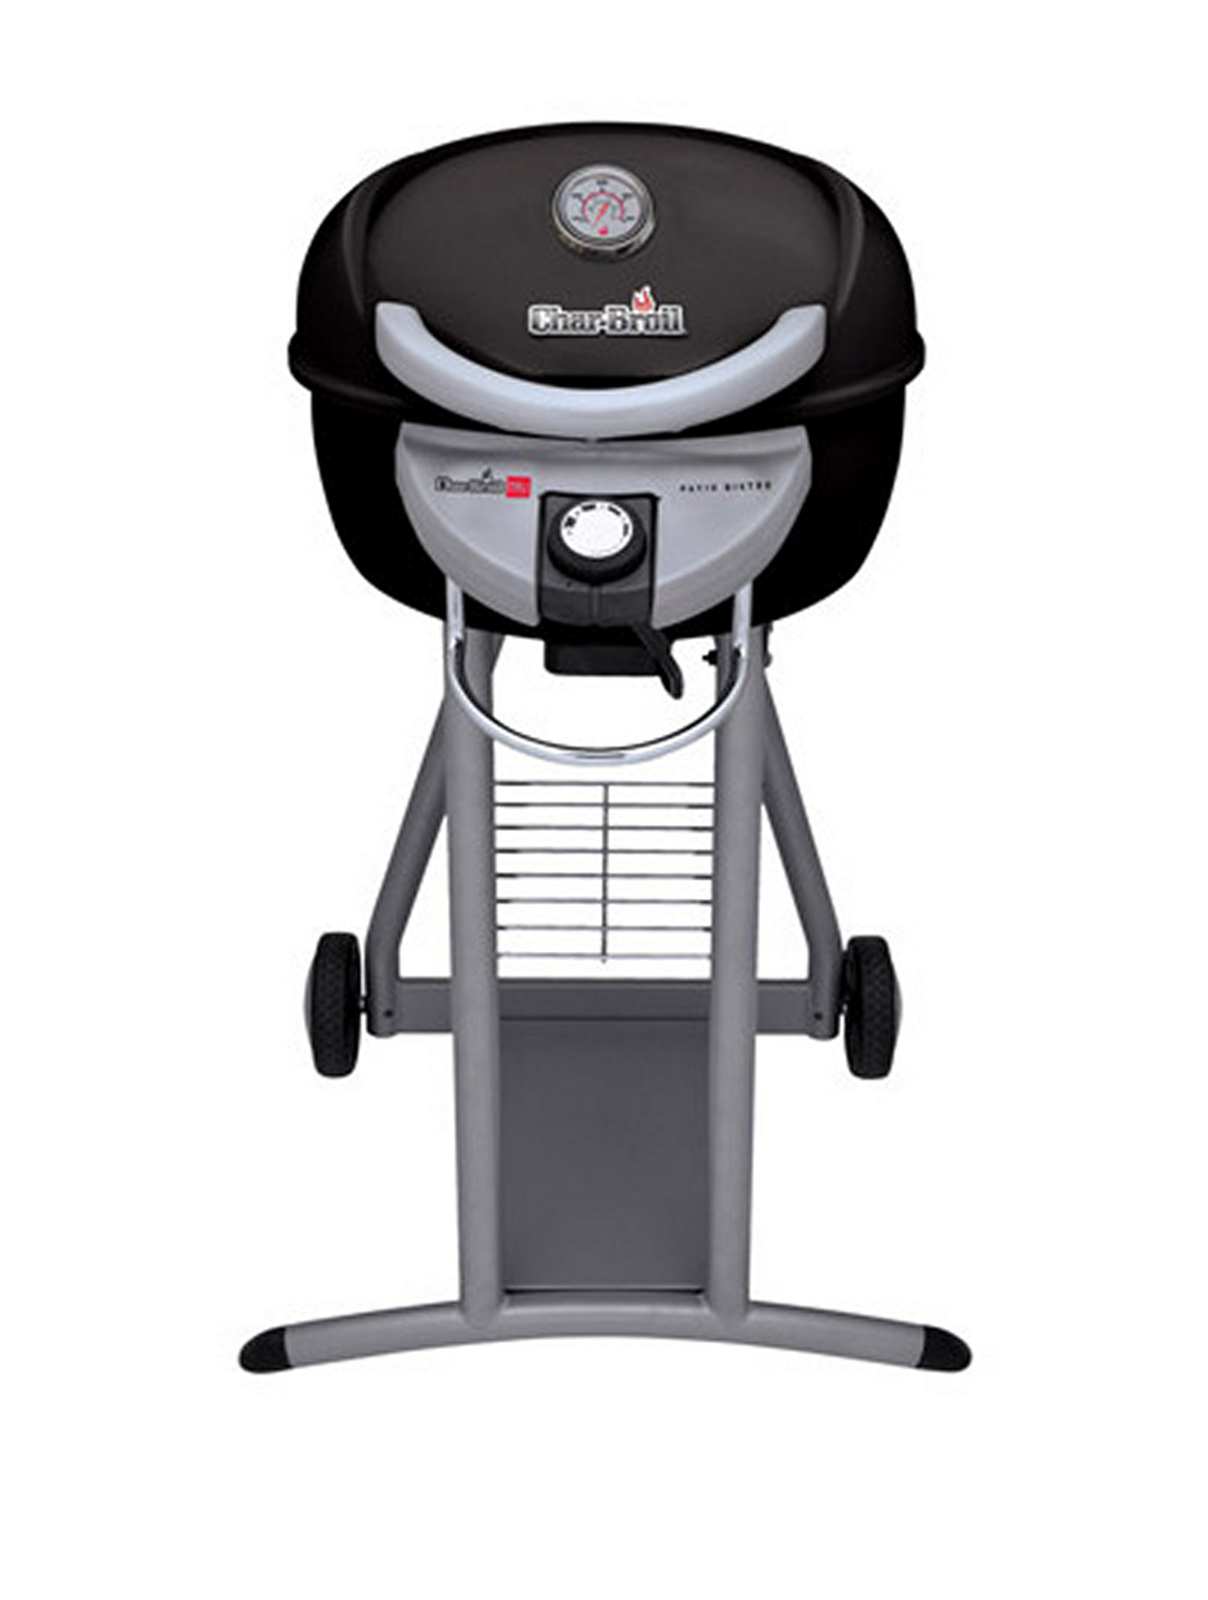 Char Broil Electric Grill Electric Grills Pinterest